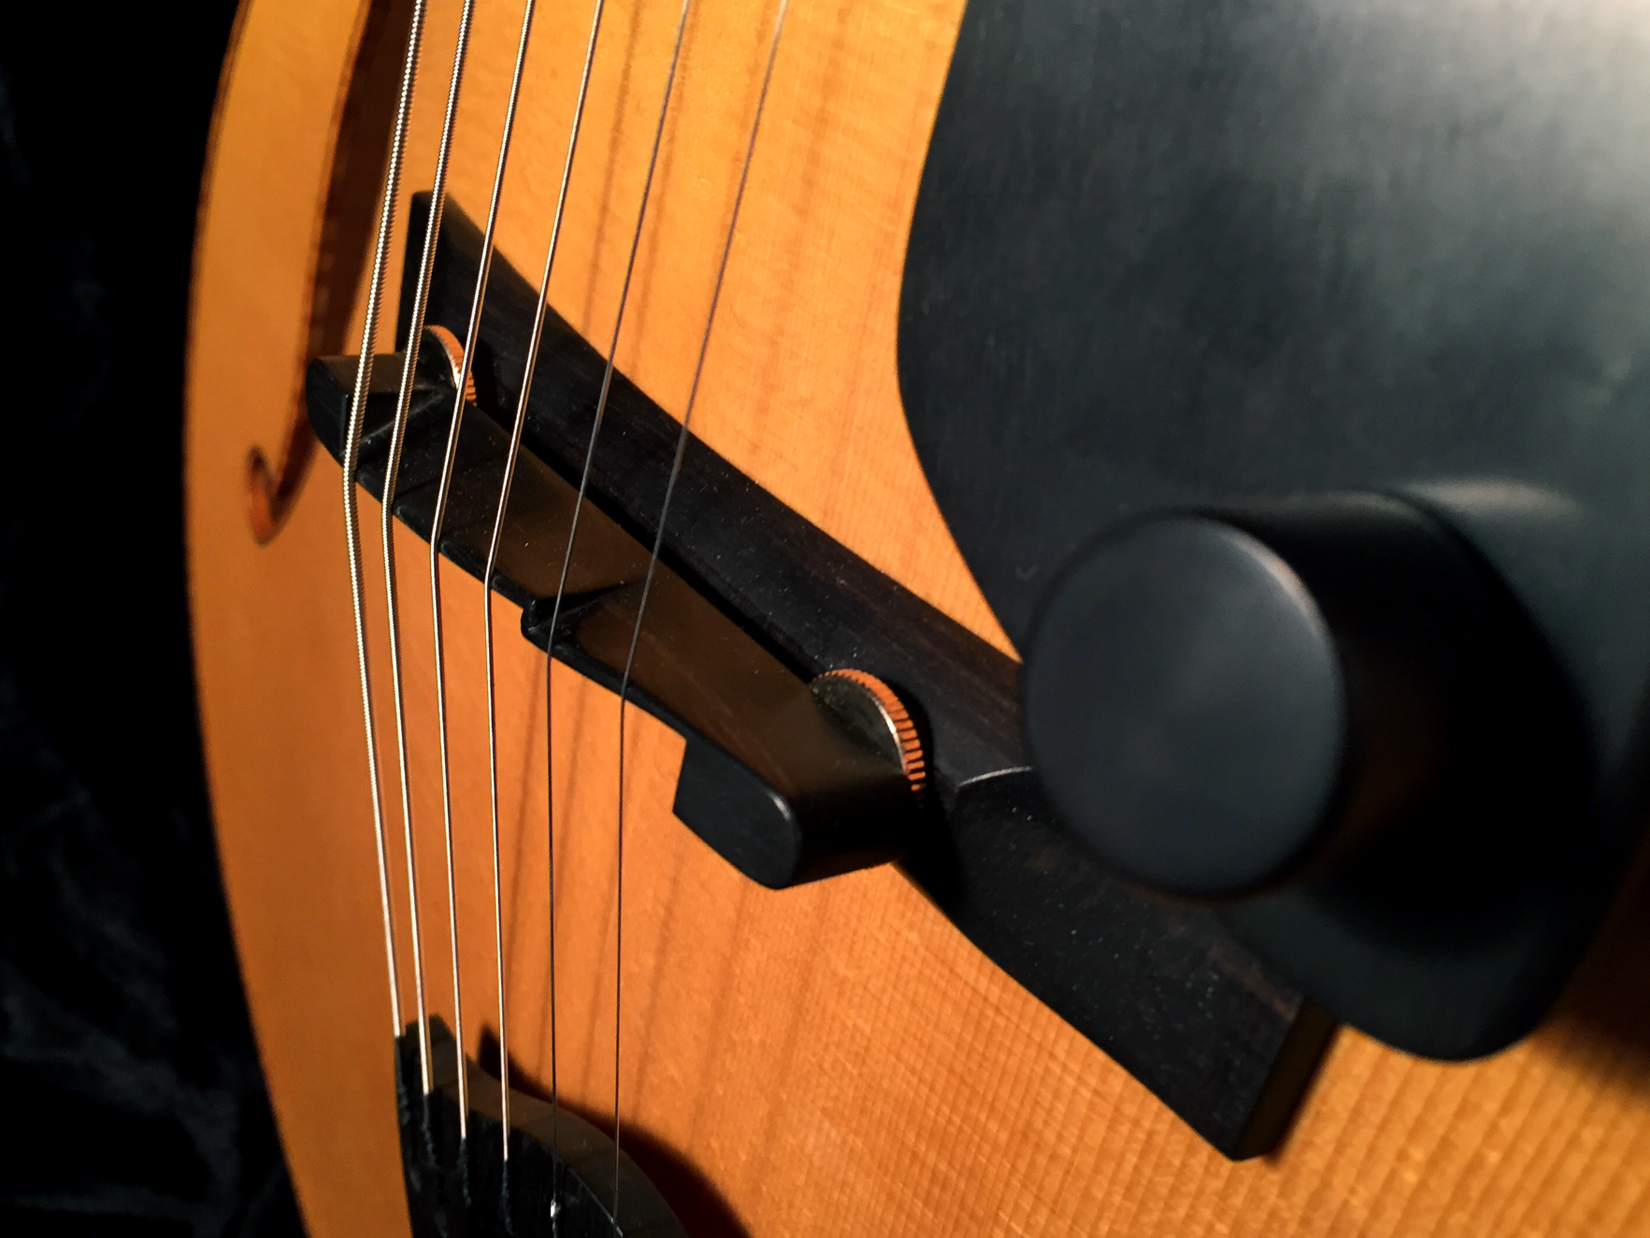 Adjustable and compensated ebony bridge